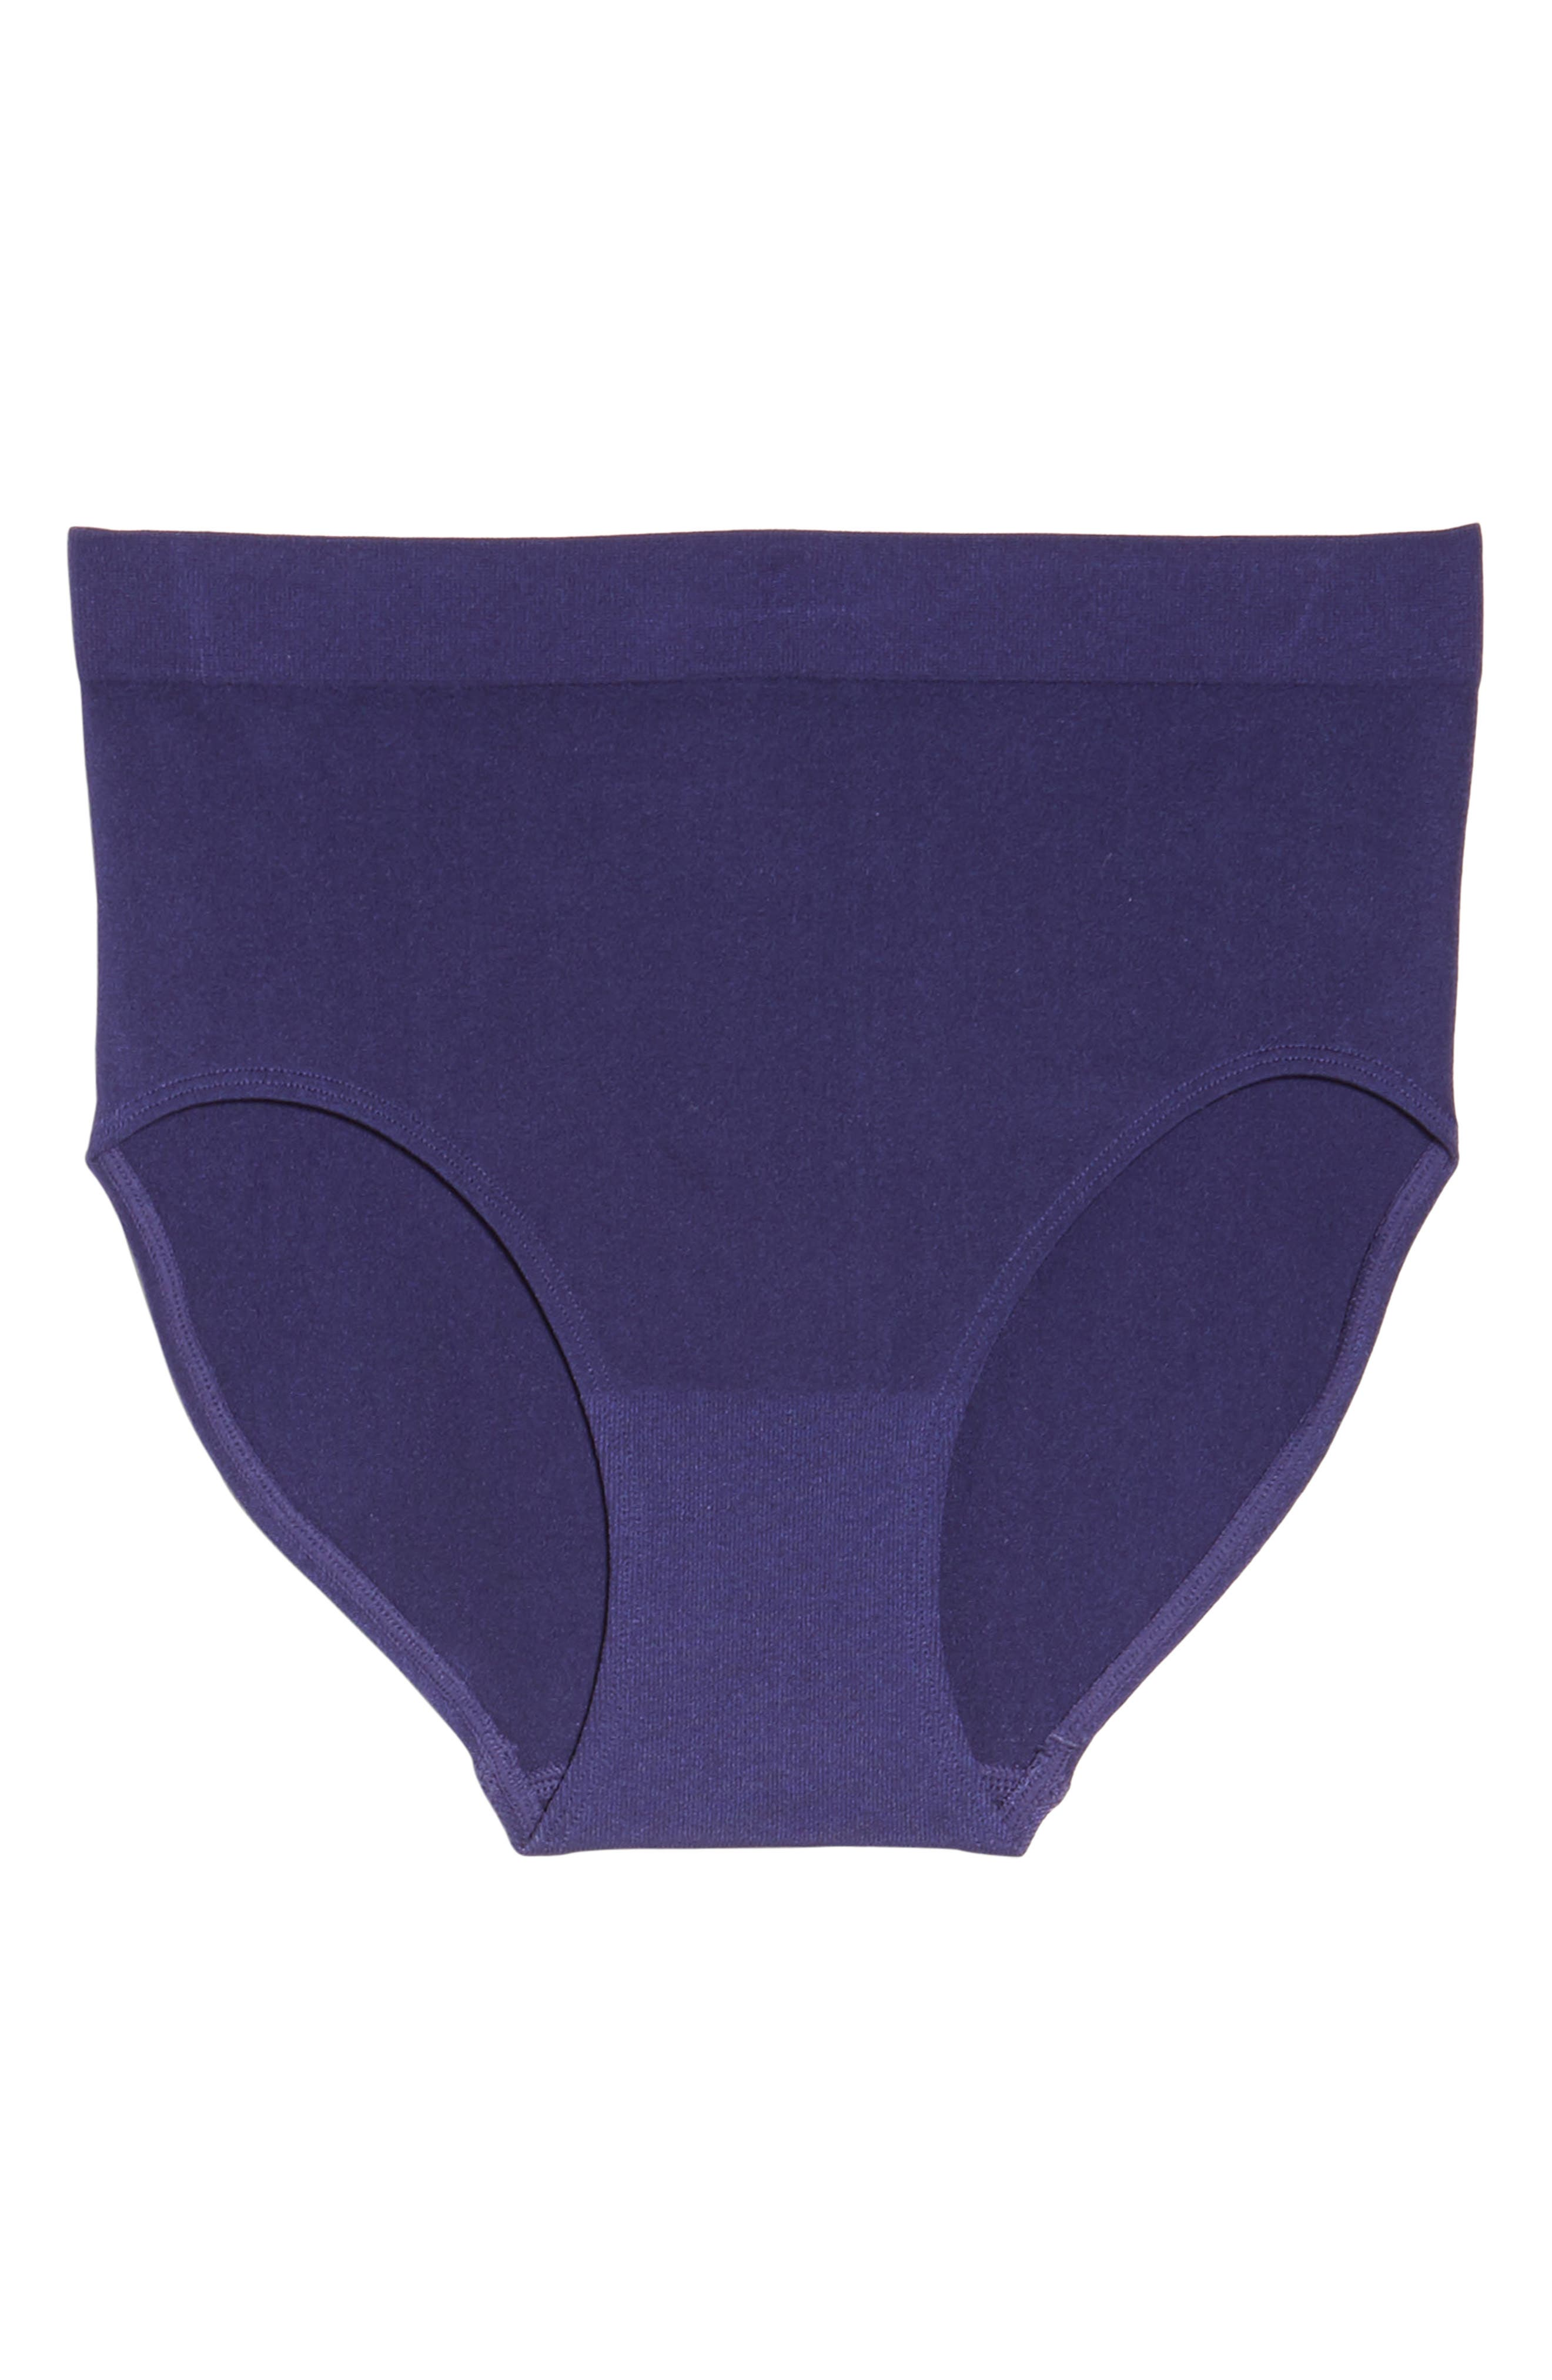 B Smooth Briefs,                             Alternate thumbnail 234, color,